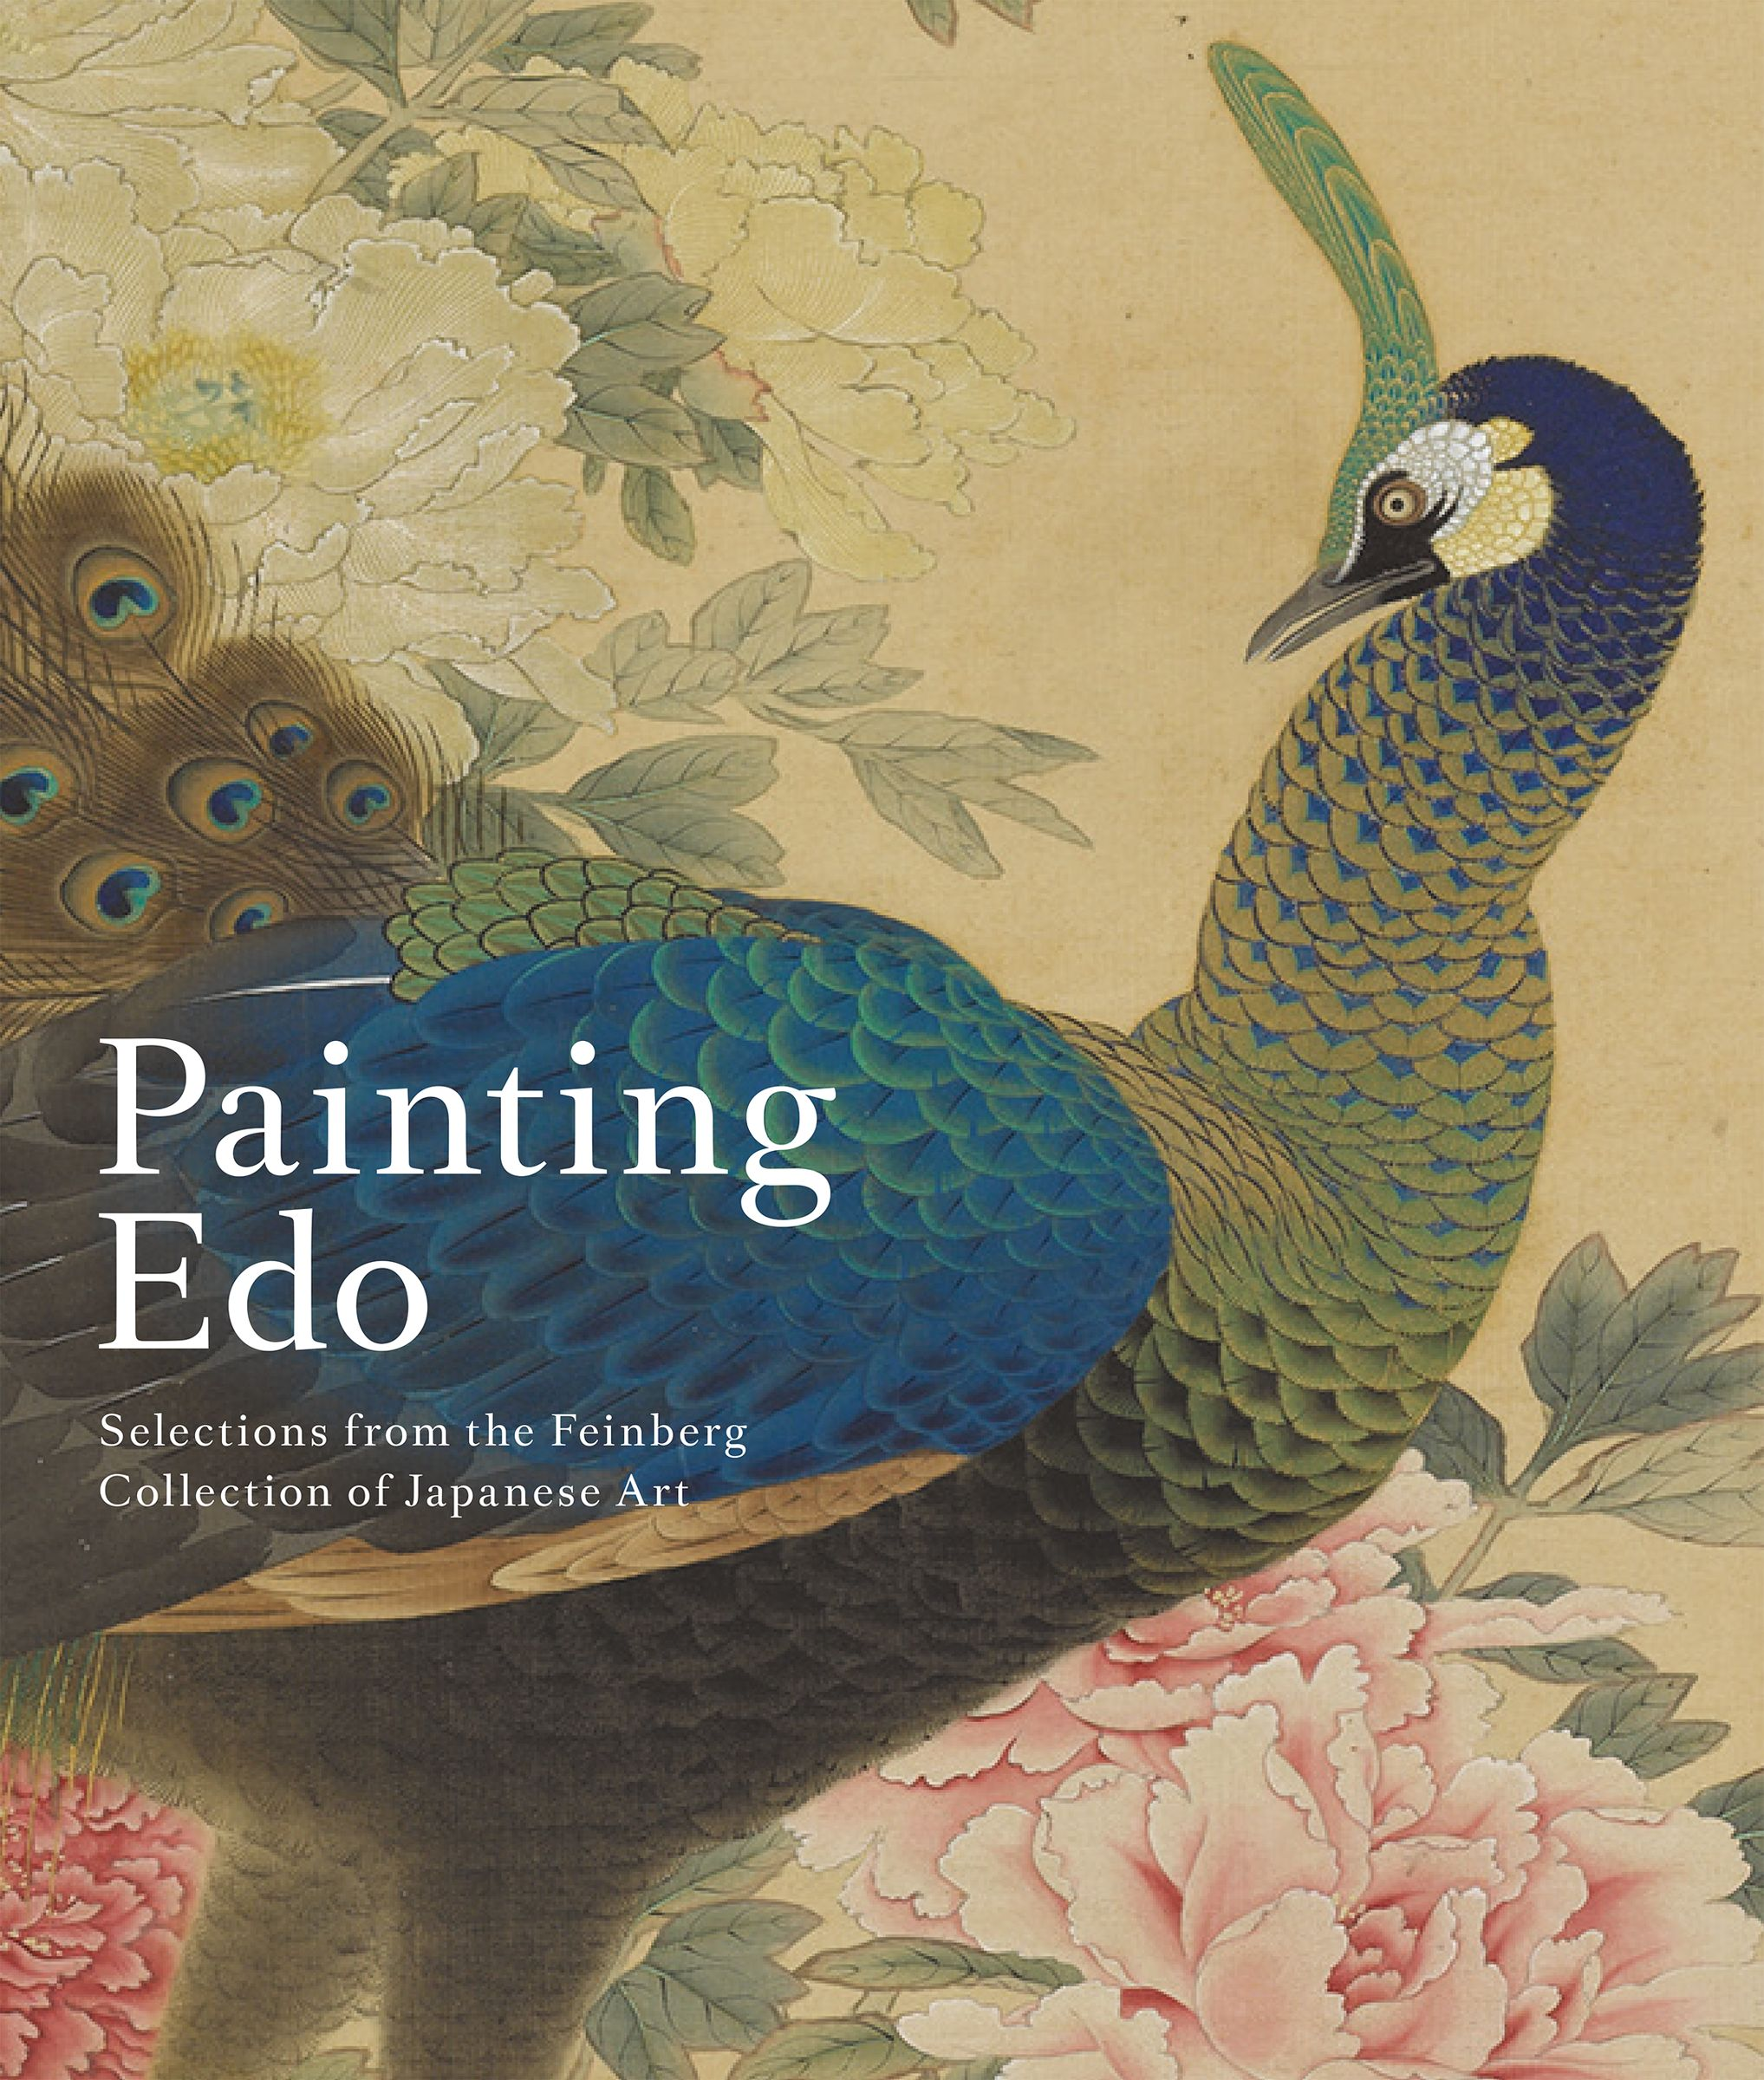 Painting Edo: Selections from the Feinberg Collection of Japanese Art